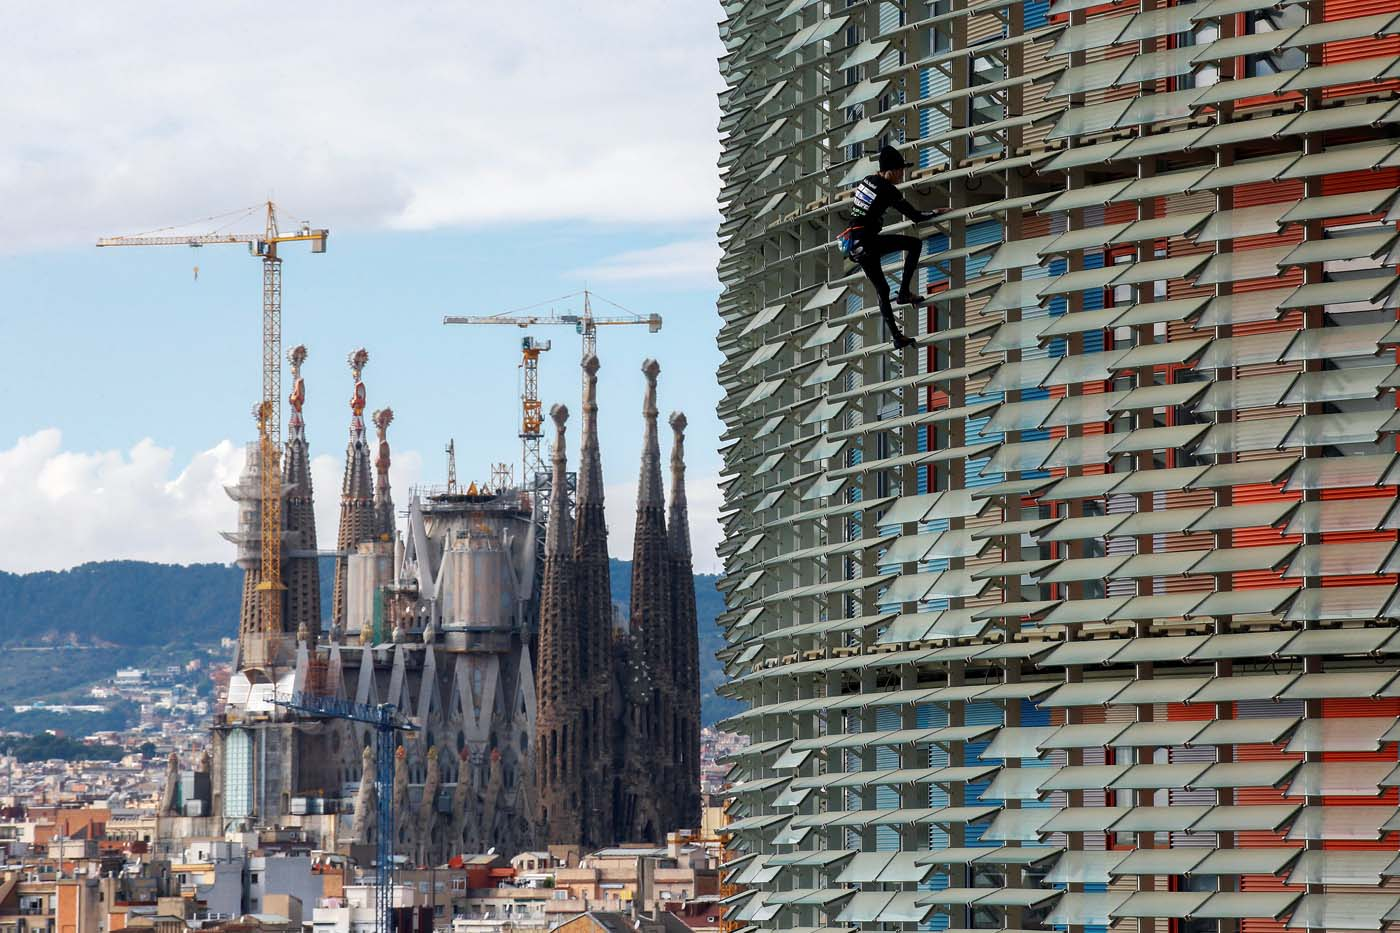 "French climber Alain Robert, also known as ""The French Spiderman"", scales the 38-story skyscraper Torre Agbar with the Sagrada Familia cathedral in the background in Barcelona, Spain, November 25, 2016. REUTERS/Albert Gea TPX IMAGES OF THE DAY"